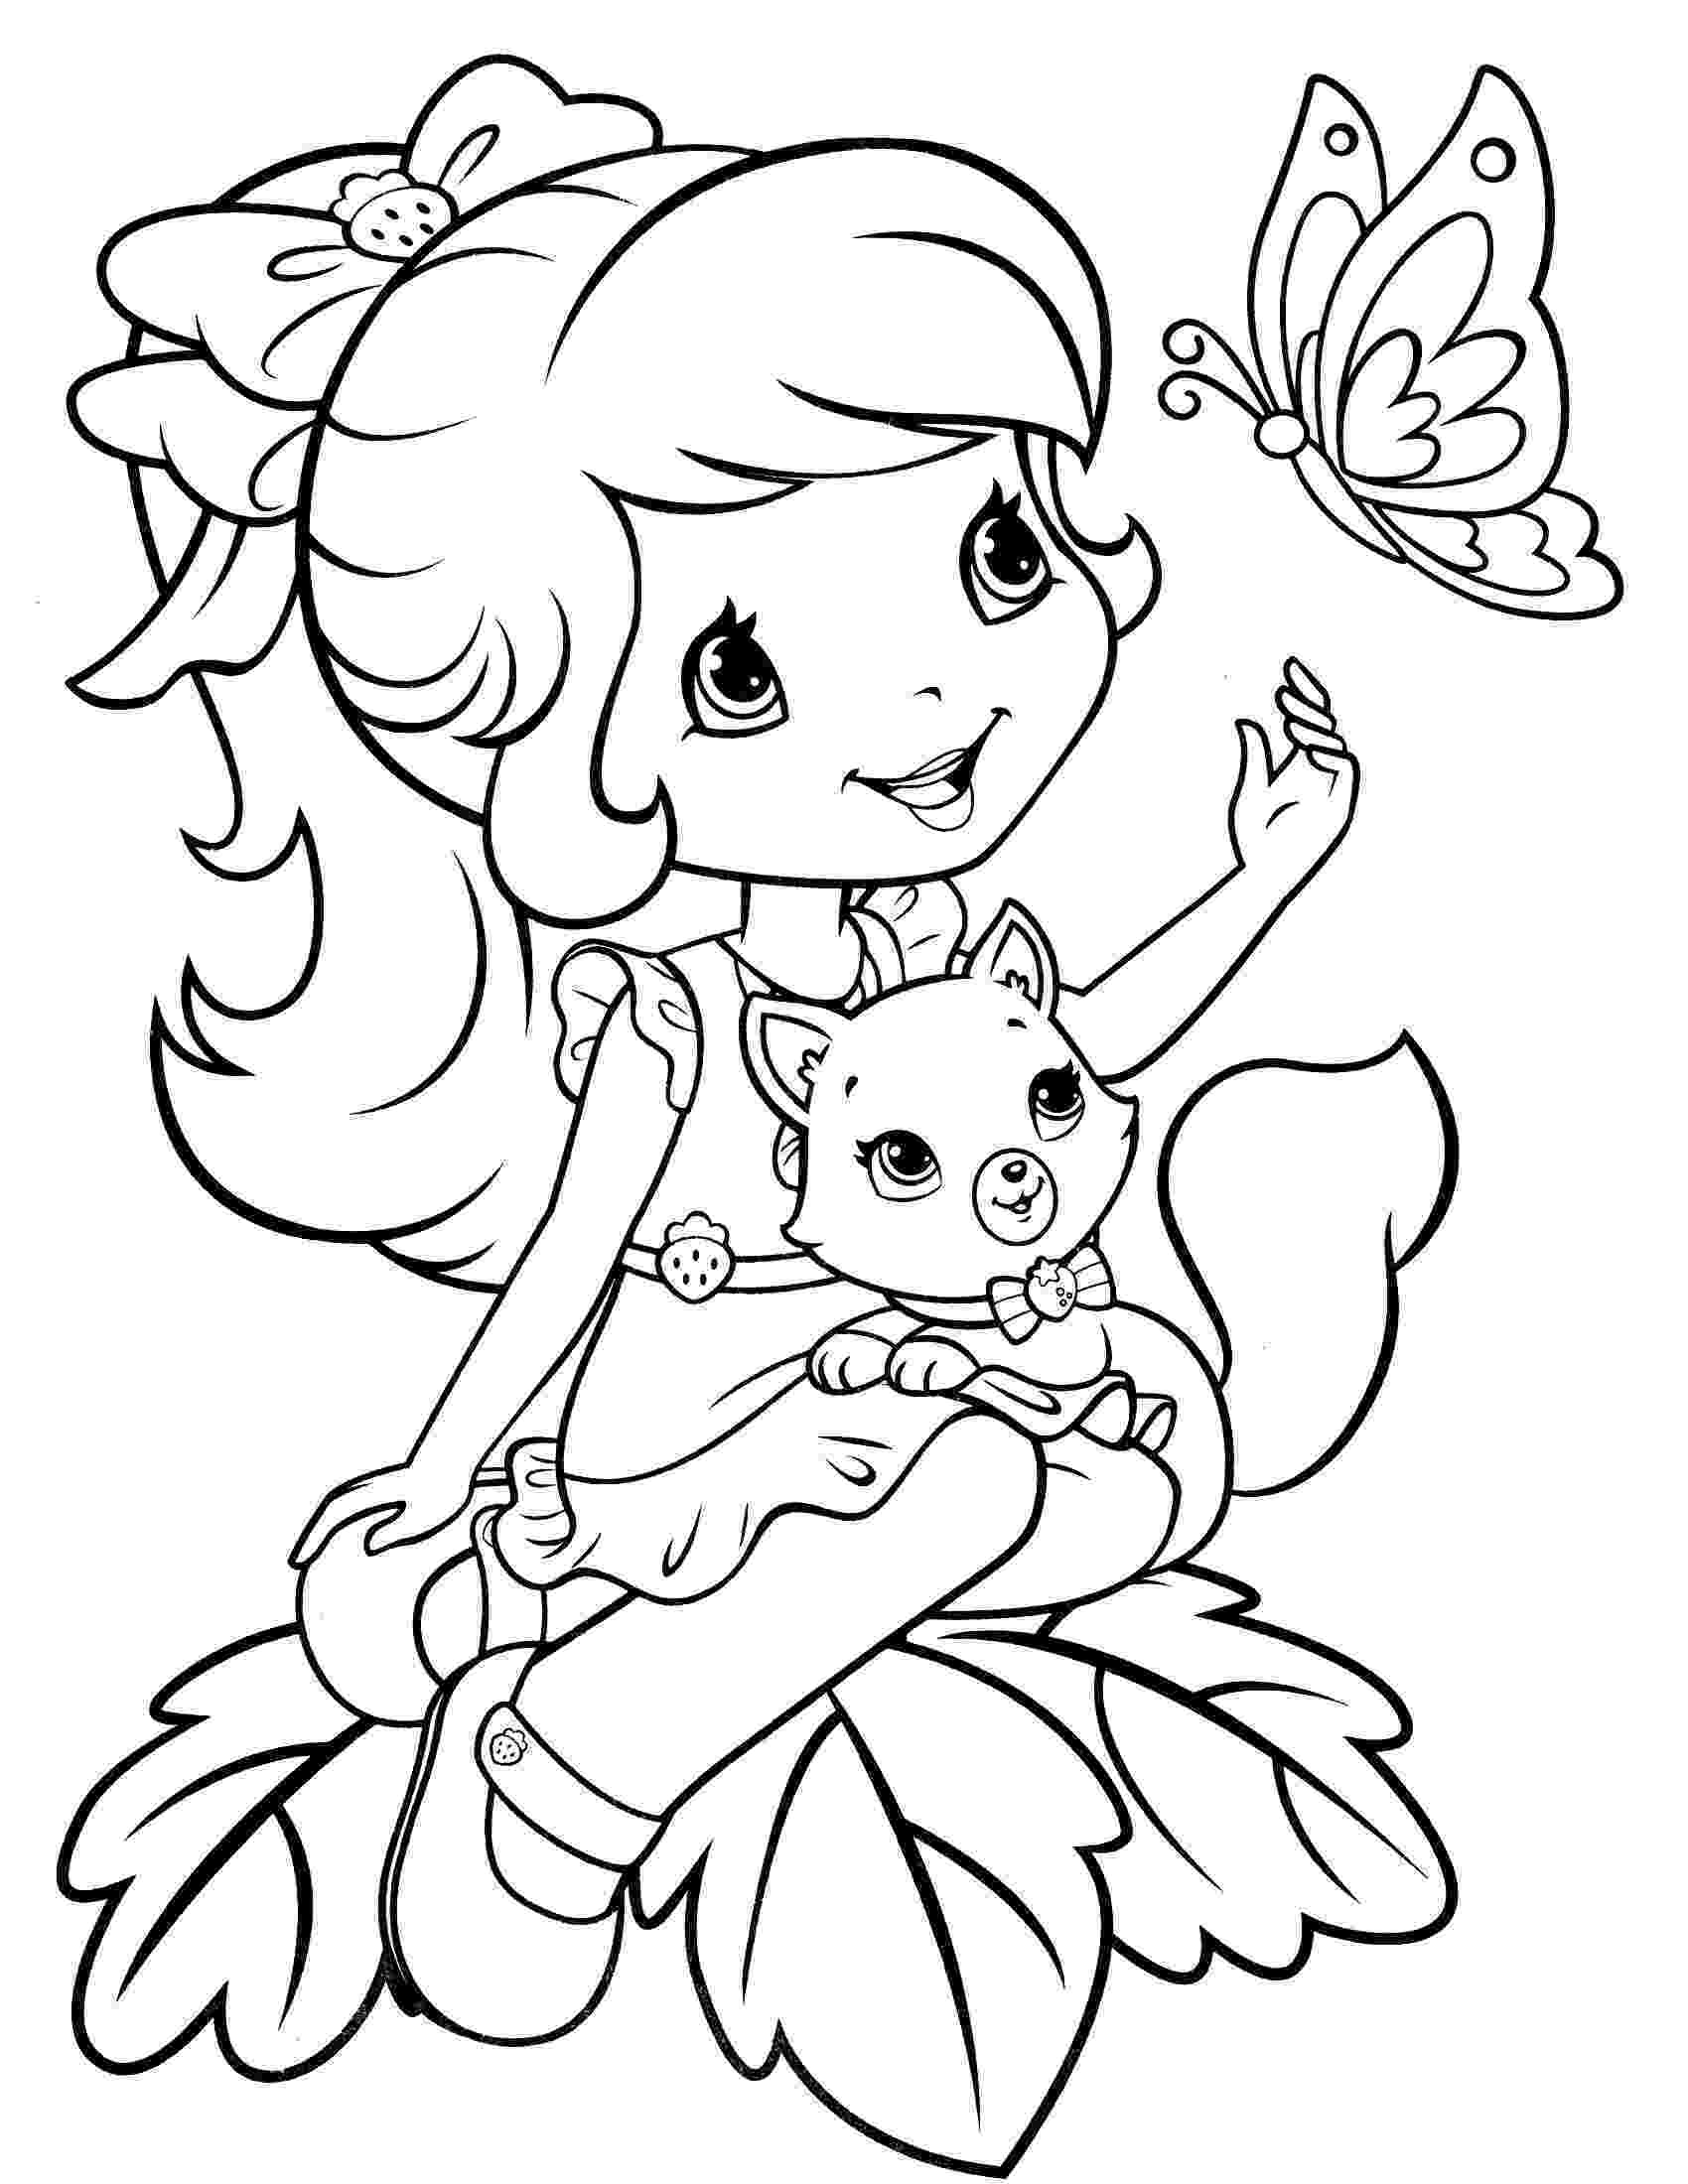 pictures of strawberry shortcake strawberry shortcake coloring page Детски pinterest of strawberry pictures shortcake